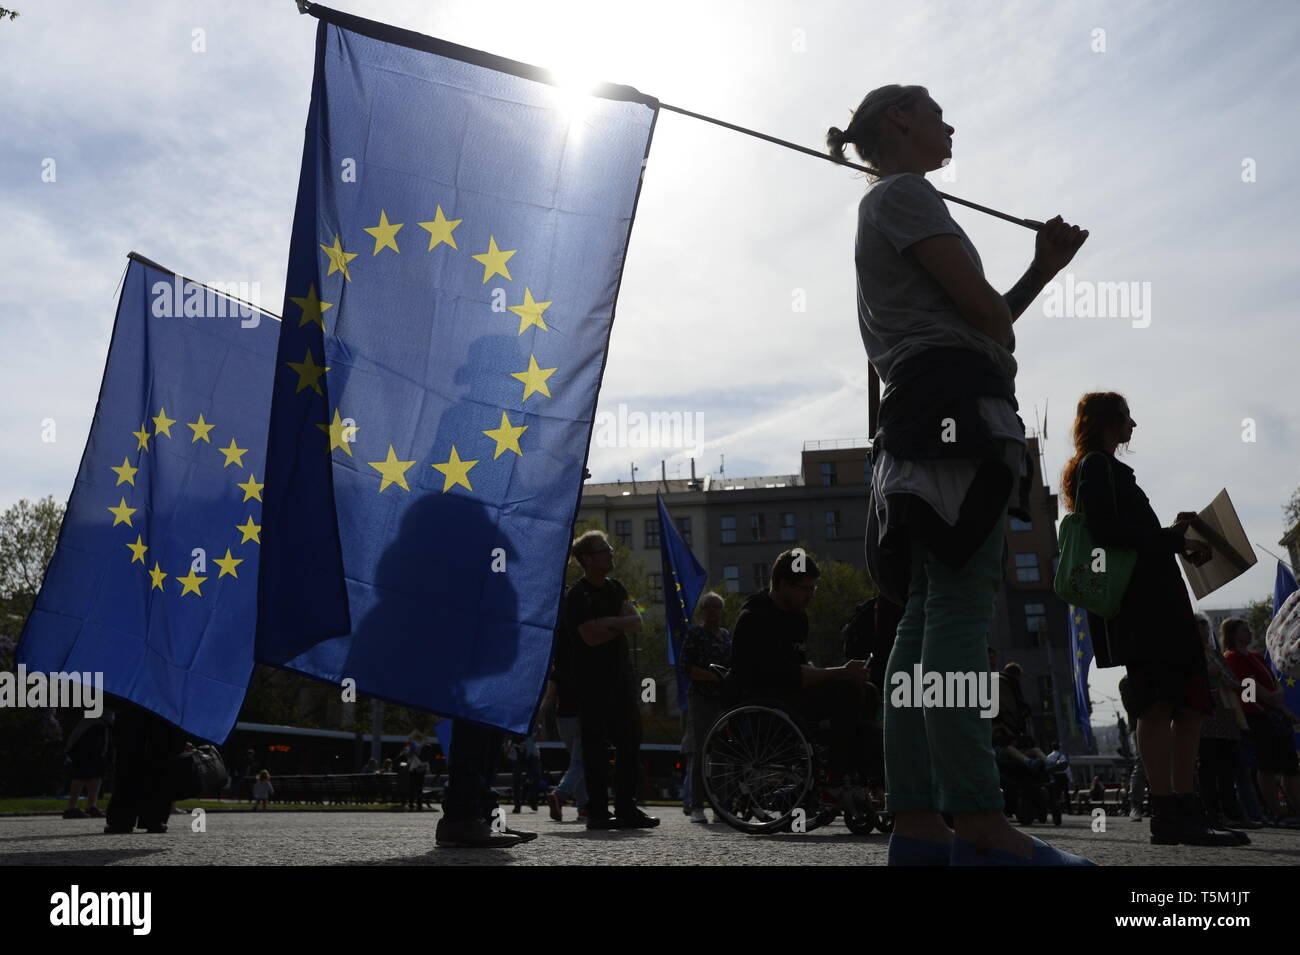 Prague, Czech Republic. 25th Apr, 2019. People hold European Union flags during a demonstration of group Against Signs of Hatred which took place at Namesti Miru Square, to be followed by a march to Wenceslas square to protest against the rally against 'dictate of the European Union' organised by Czech far-right Freedom and Direct Democracy party (SPD) at Wenceslas Square in Prague, Czech Republic, Thursday, April 25, 2019. Credit: Katerina Sulova/CTK Photo/Alamy Live News - Stock Image